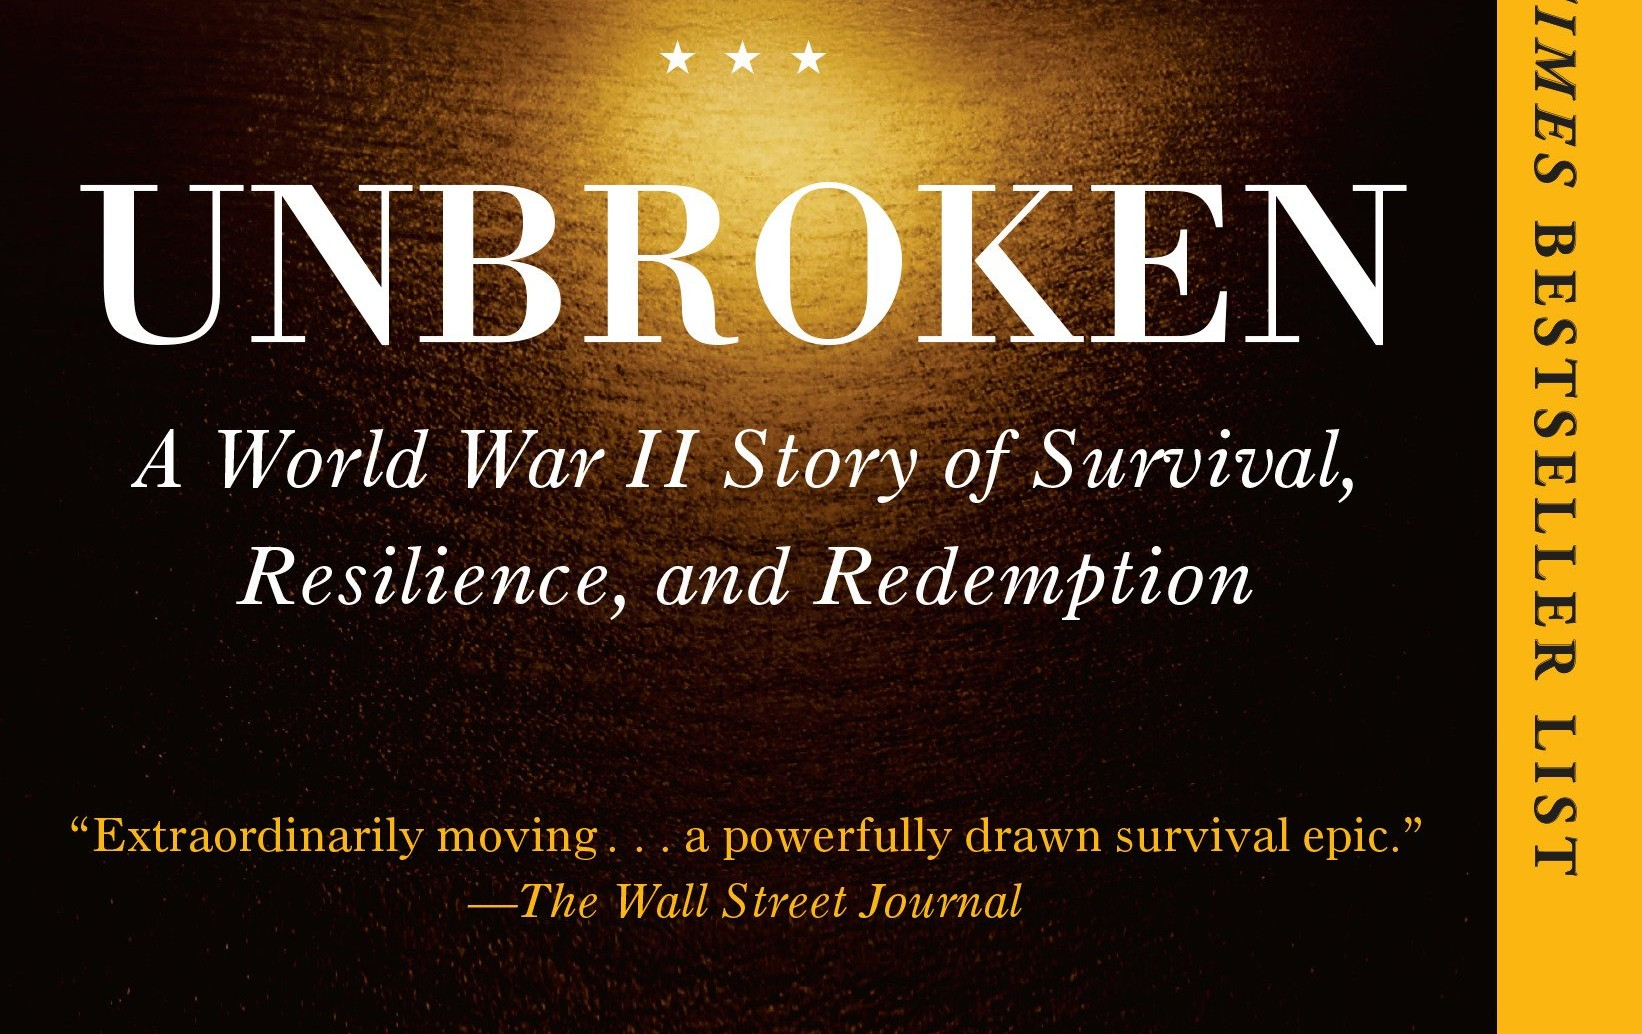 Recommended Read: Unbroken